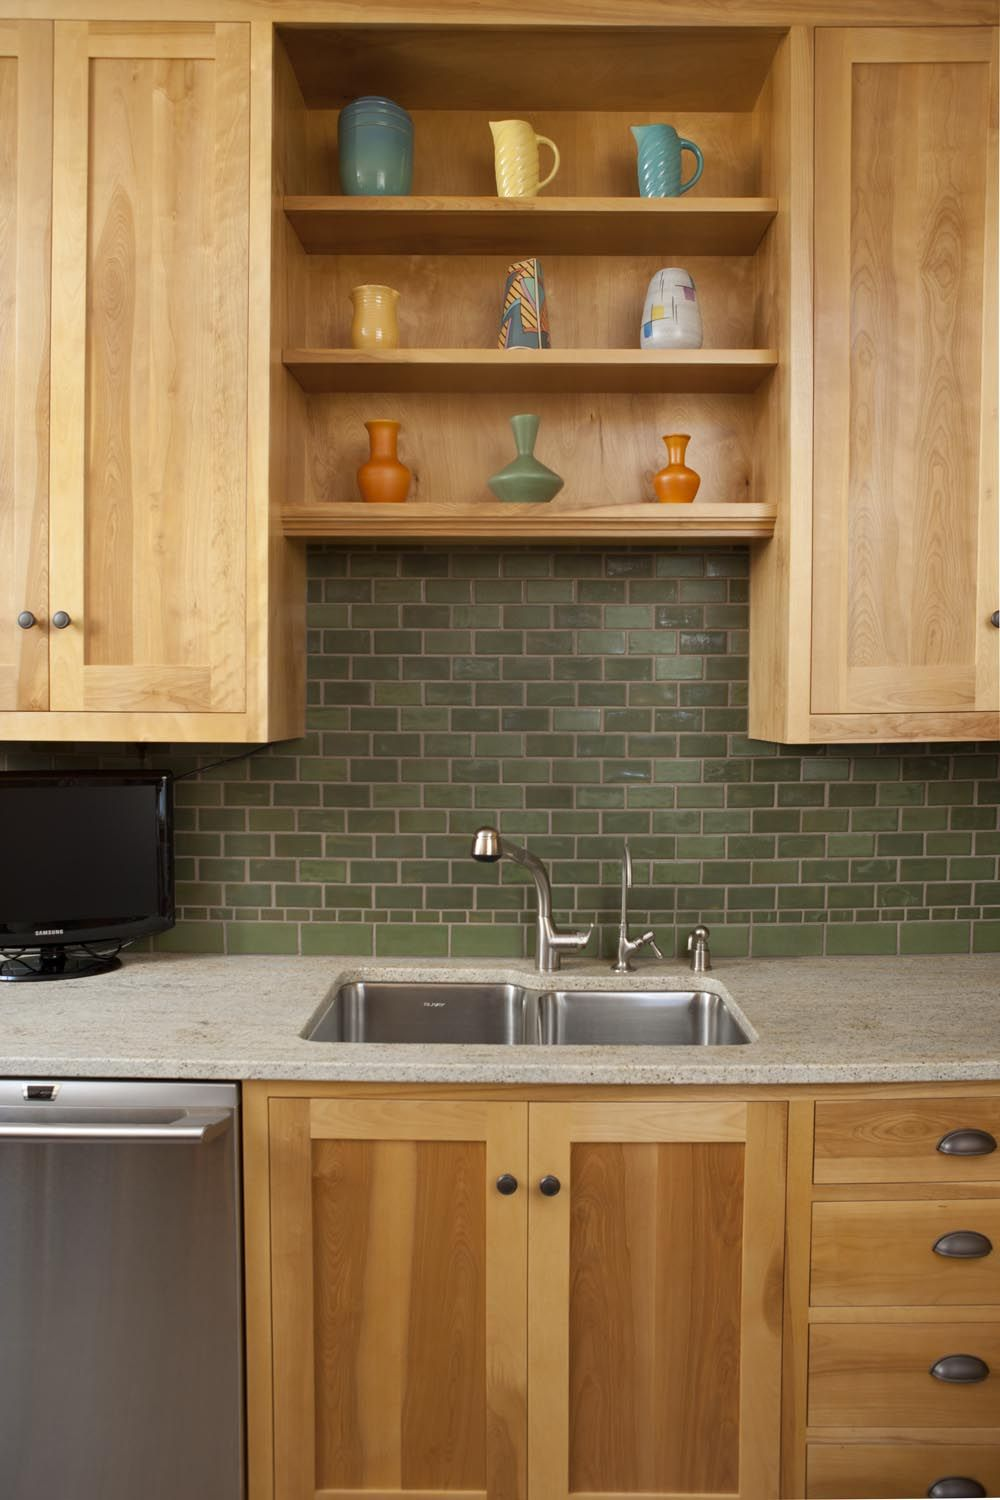 The Vermont Kitchen Backsplash Arts Crafts Tile By Clay Squared In 2020 Contemporary Kitchen Cabinets Traditional Kitchen Design Kitchen Cabinet Remodel